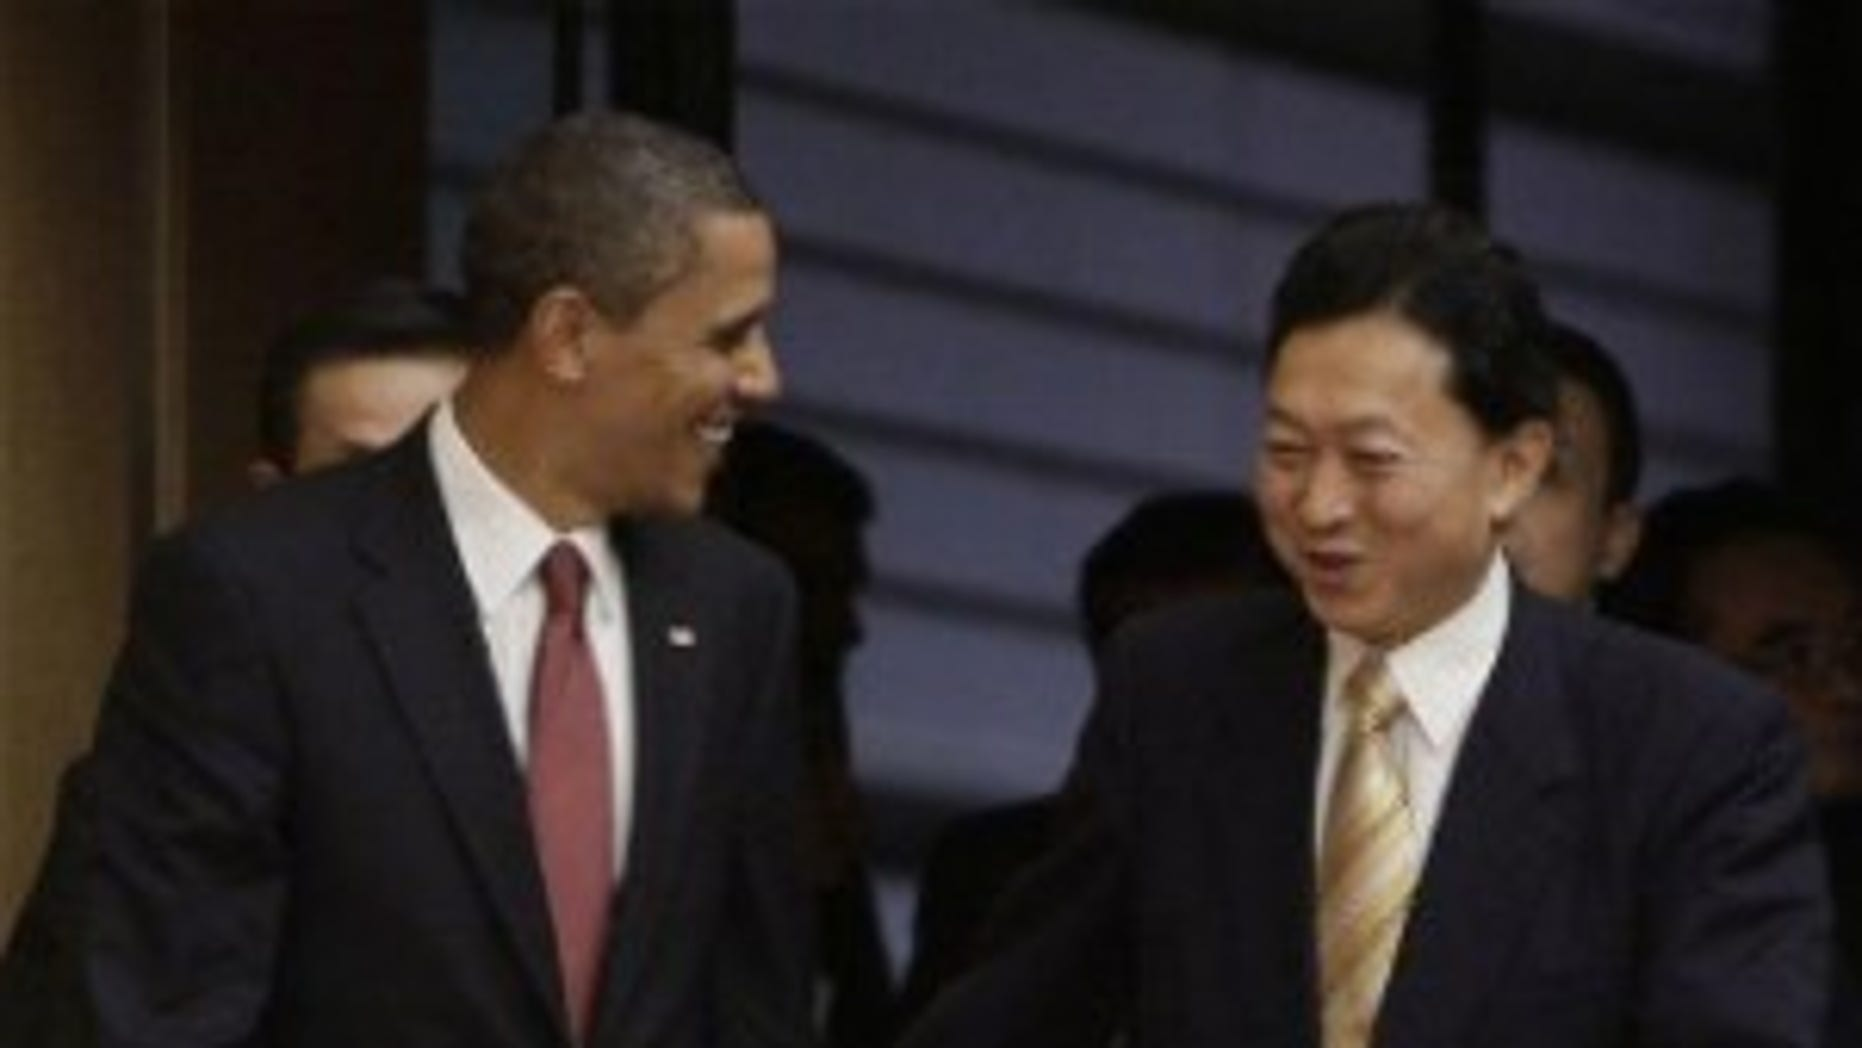 President Obama and Japanese PM Hatoyama walk together to their joint press conference (AP Photo)